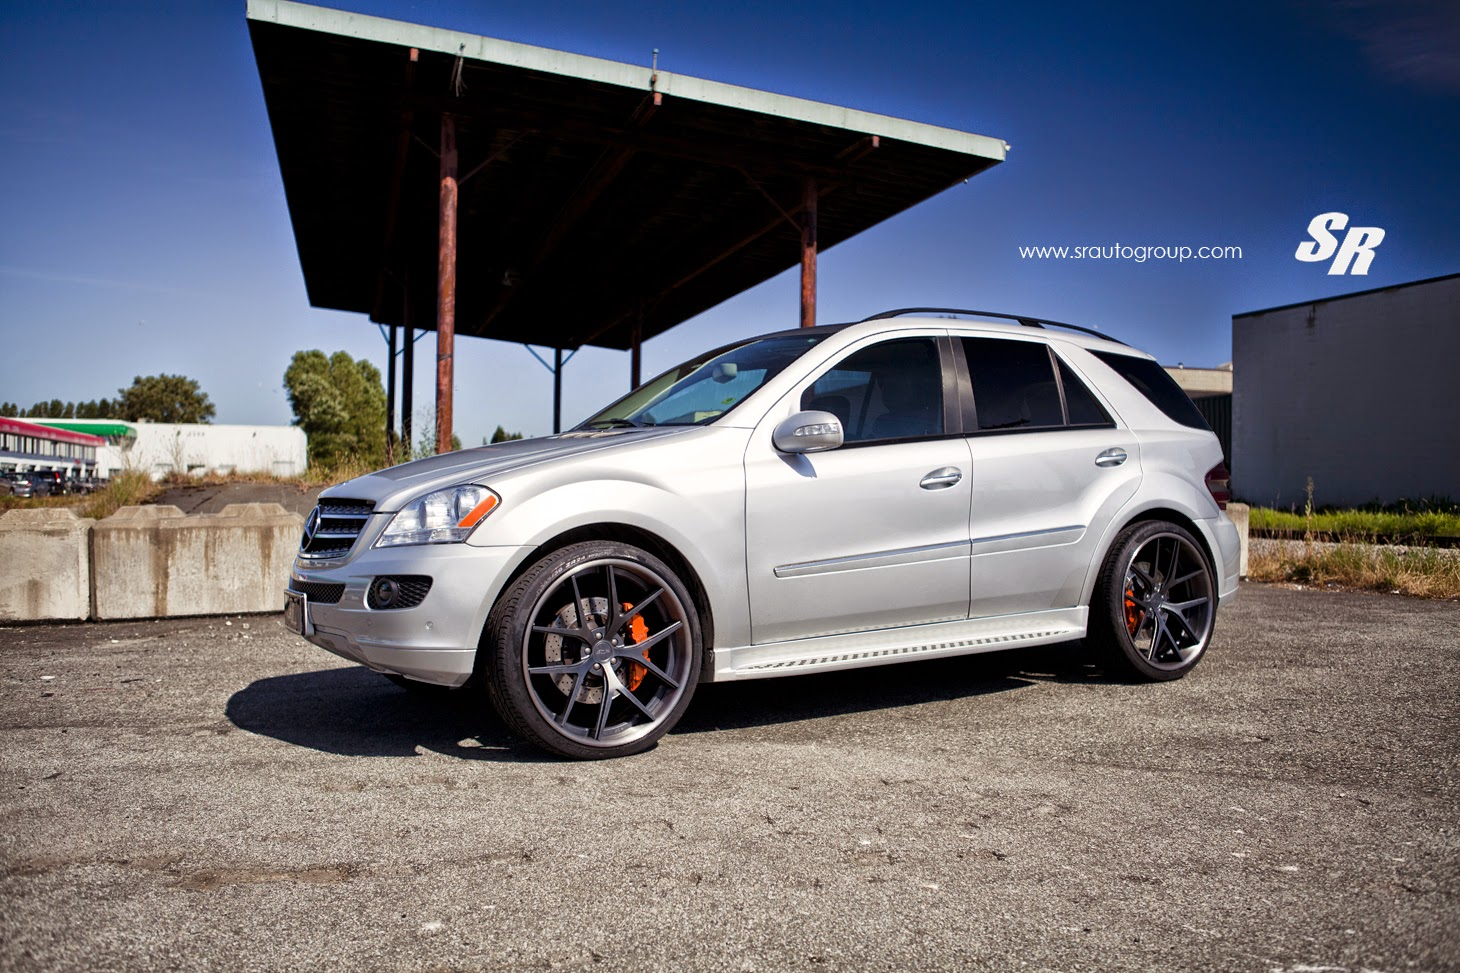 Mercedes Benz mercedes benz ml320 : Mercedes-Benz W164 ML320 on PUR Wheels | BENZTUNING